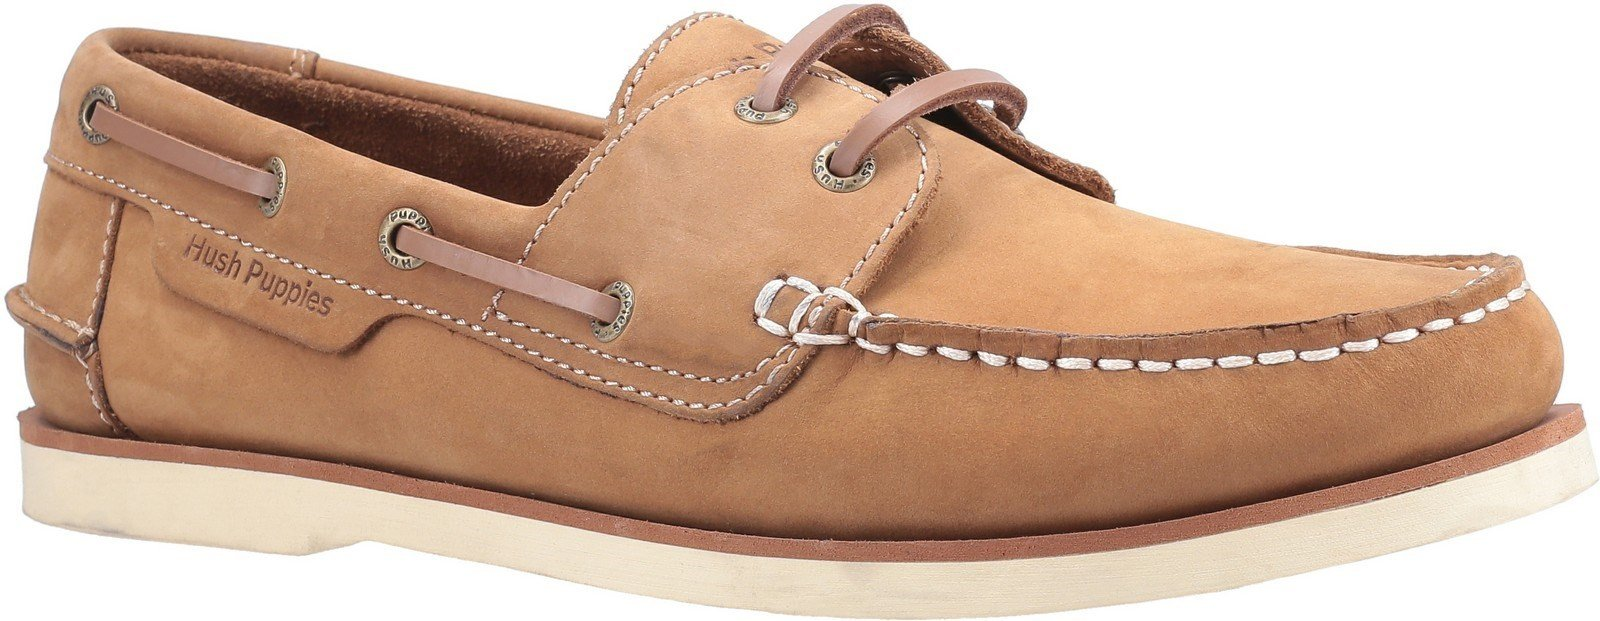 Hush Puppies Men's Henry Classic Lace Up Loafer Various Colours 28365 - Chestnut 6